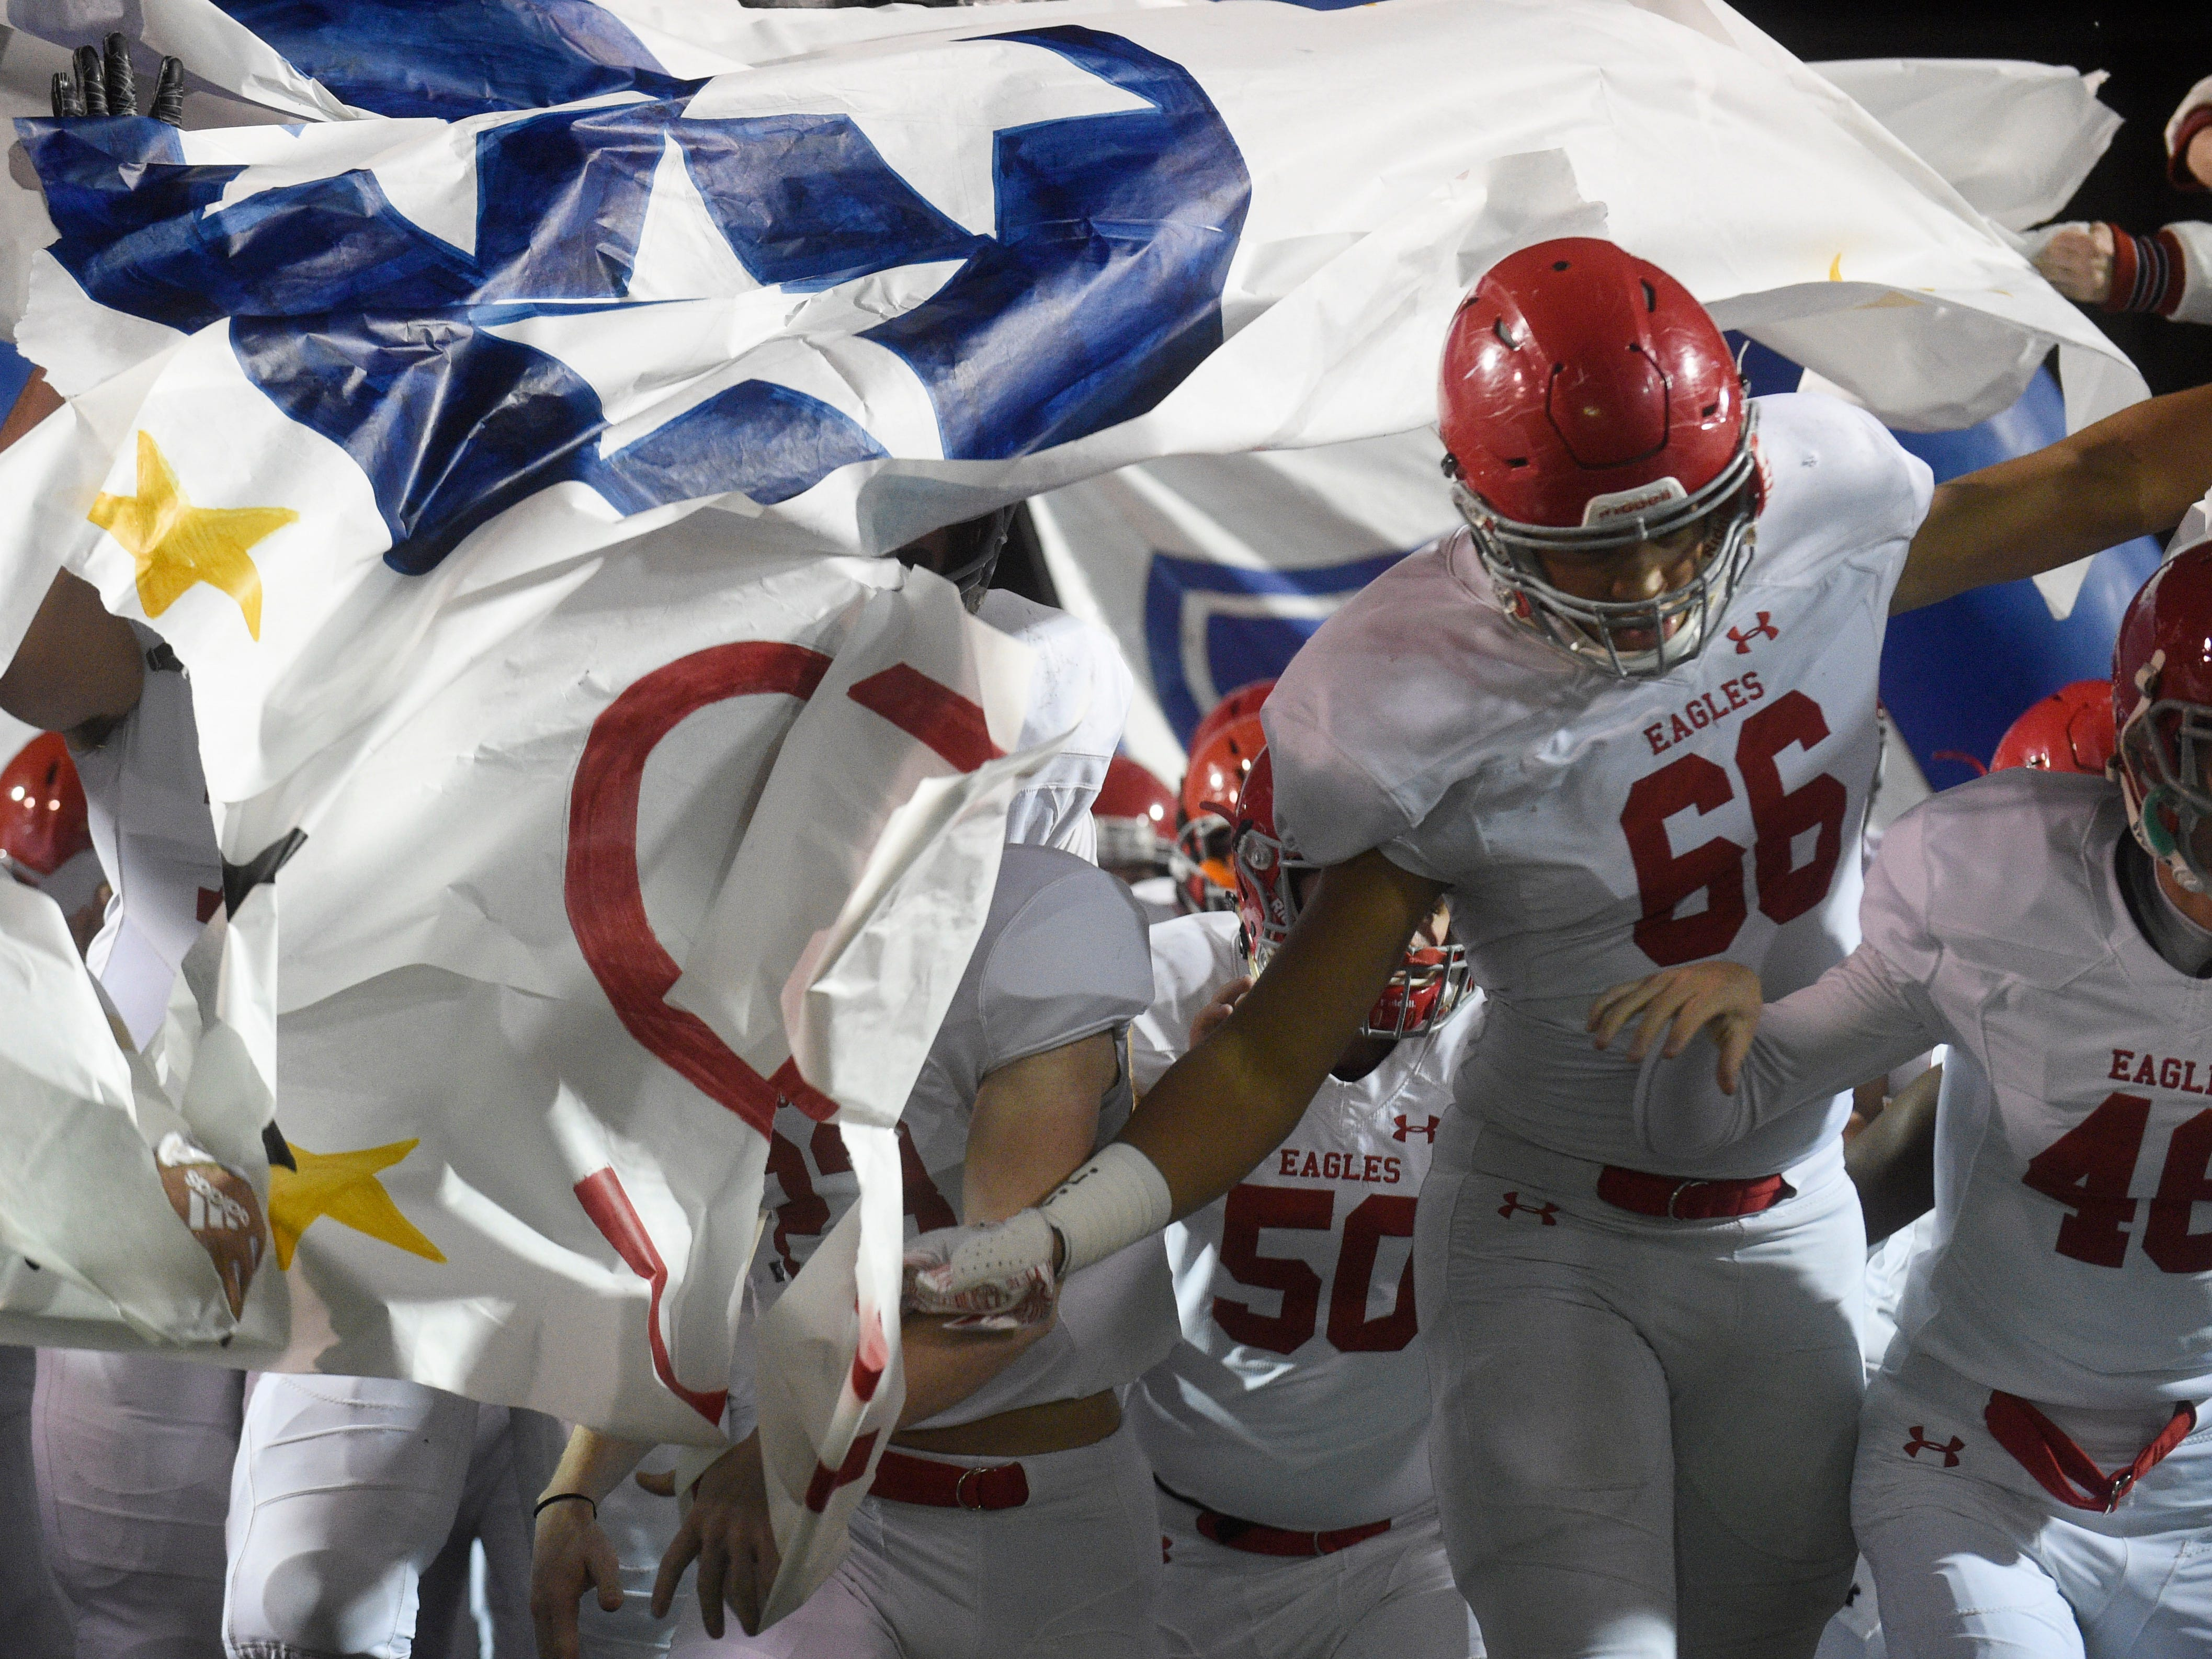 Brentwood Academy defensive lineman Nate Clifton (66) runs onto the field before the start of the Division II-AAA BlueCross Bowl state championship at Tennessee Tech's Tucker Stadium in Cookeville, Tenn., on Friday, Nov. 30, 2018.